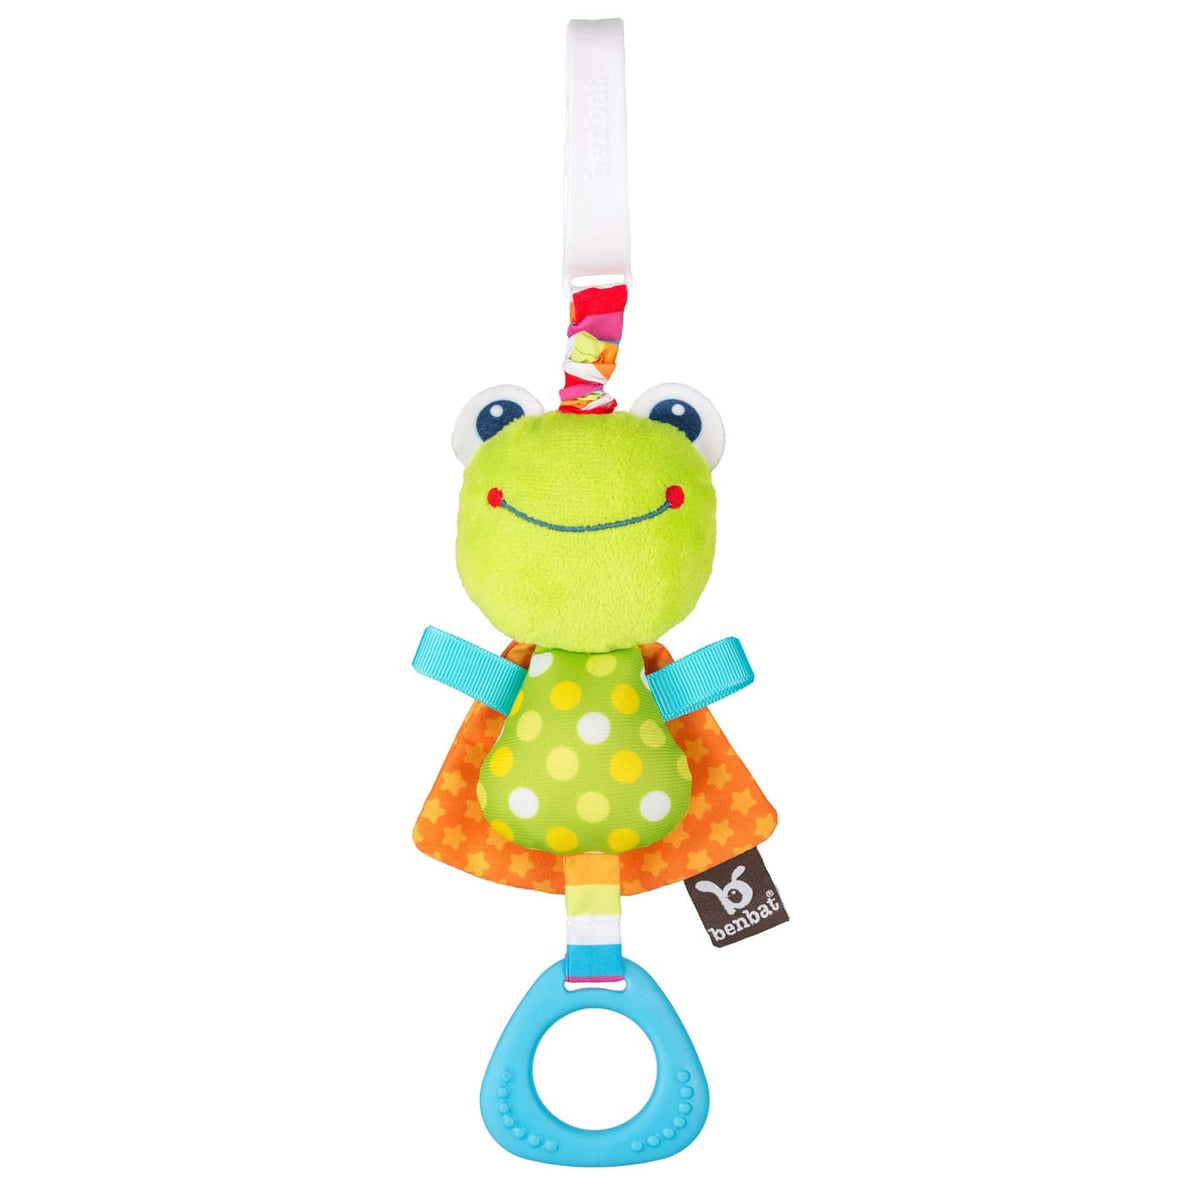 Benbat Dazzle Friends Travel Jitters - Frog - TOYS & PLAY - CLIP ON TOYS